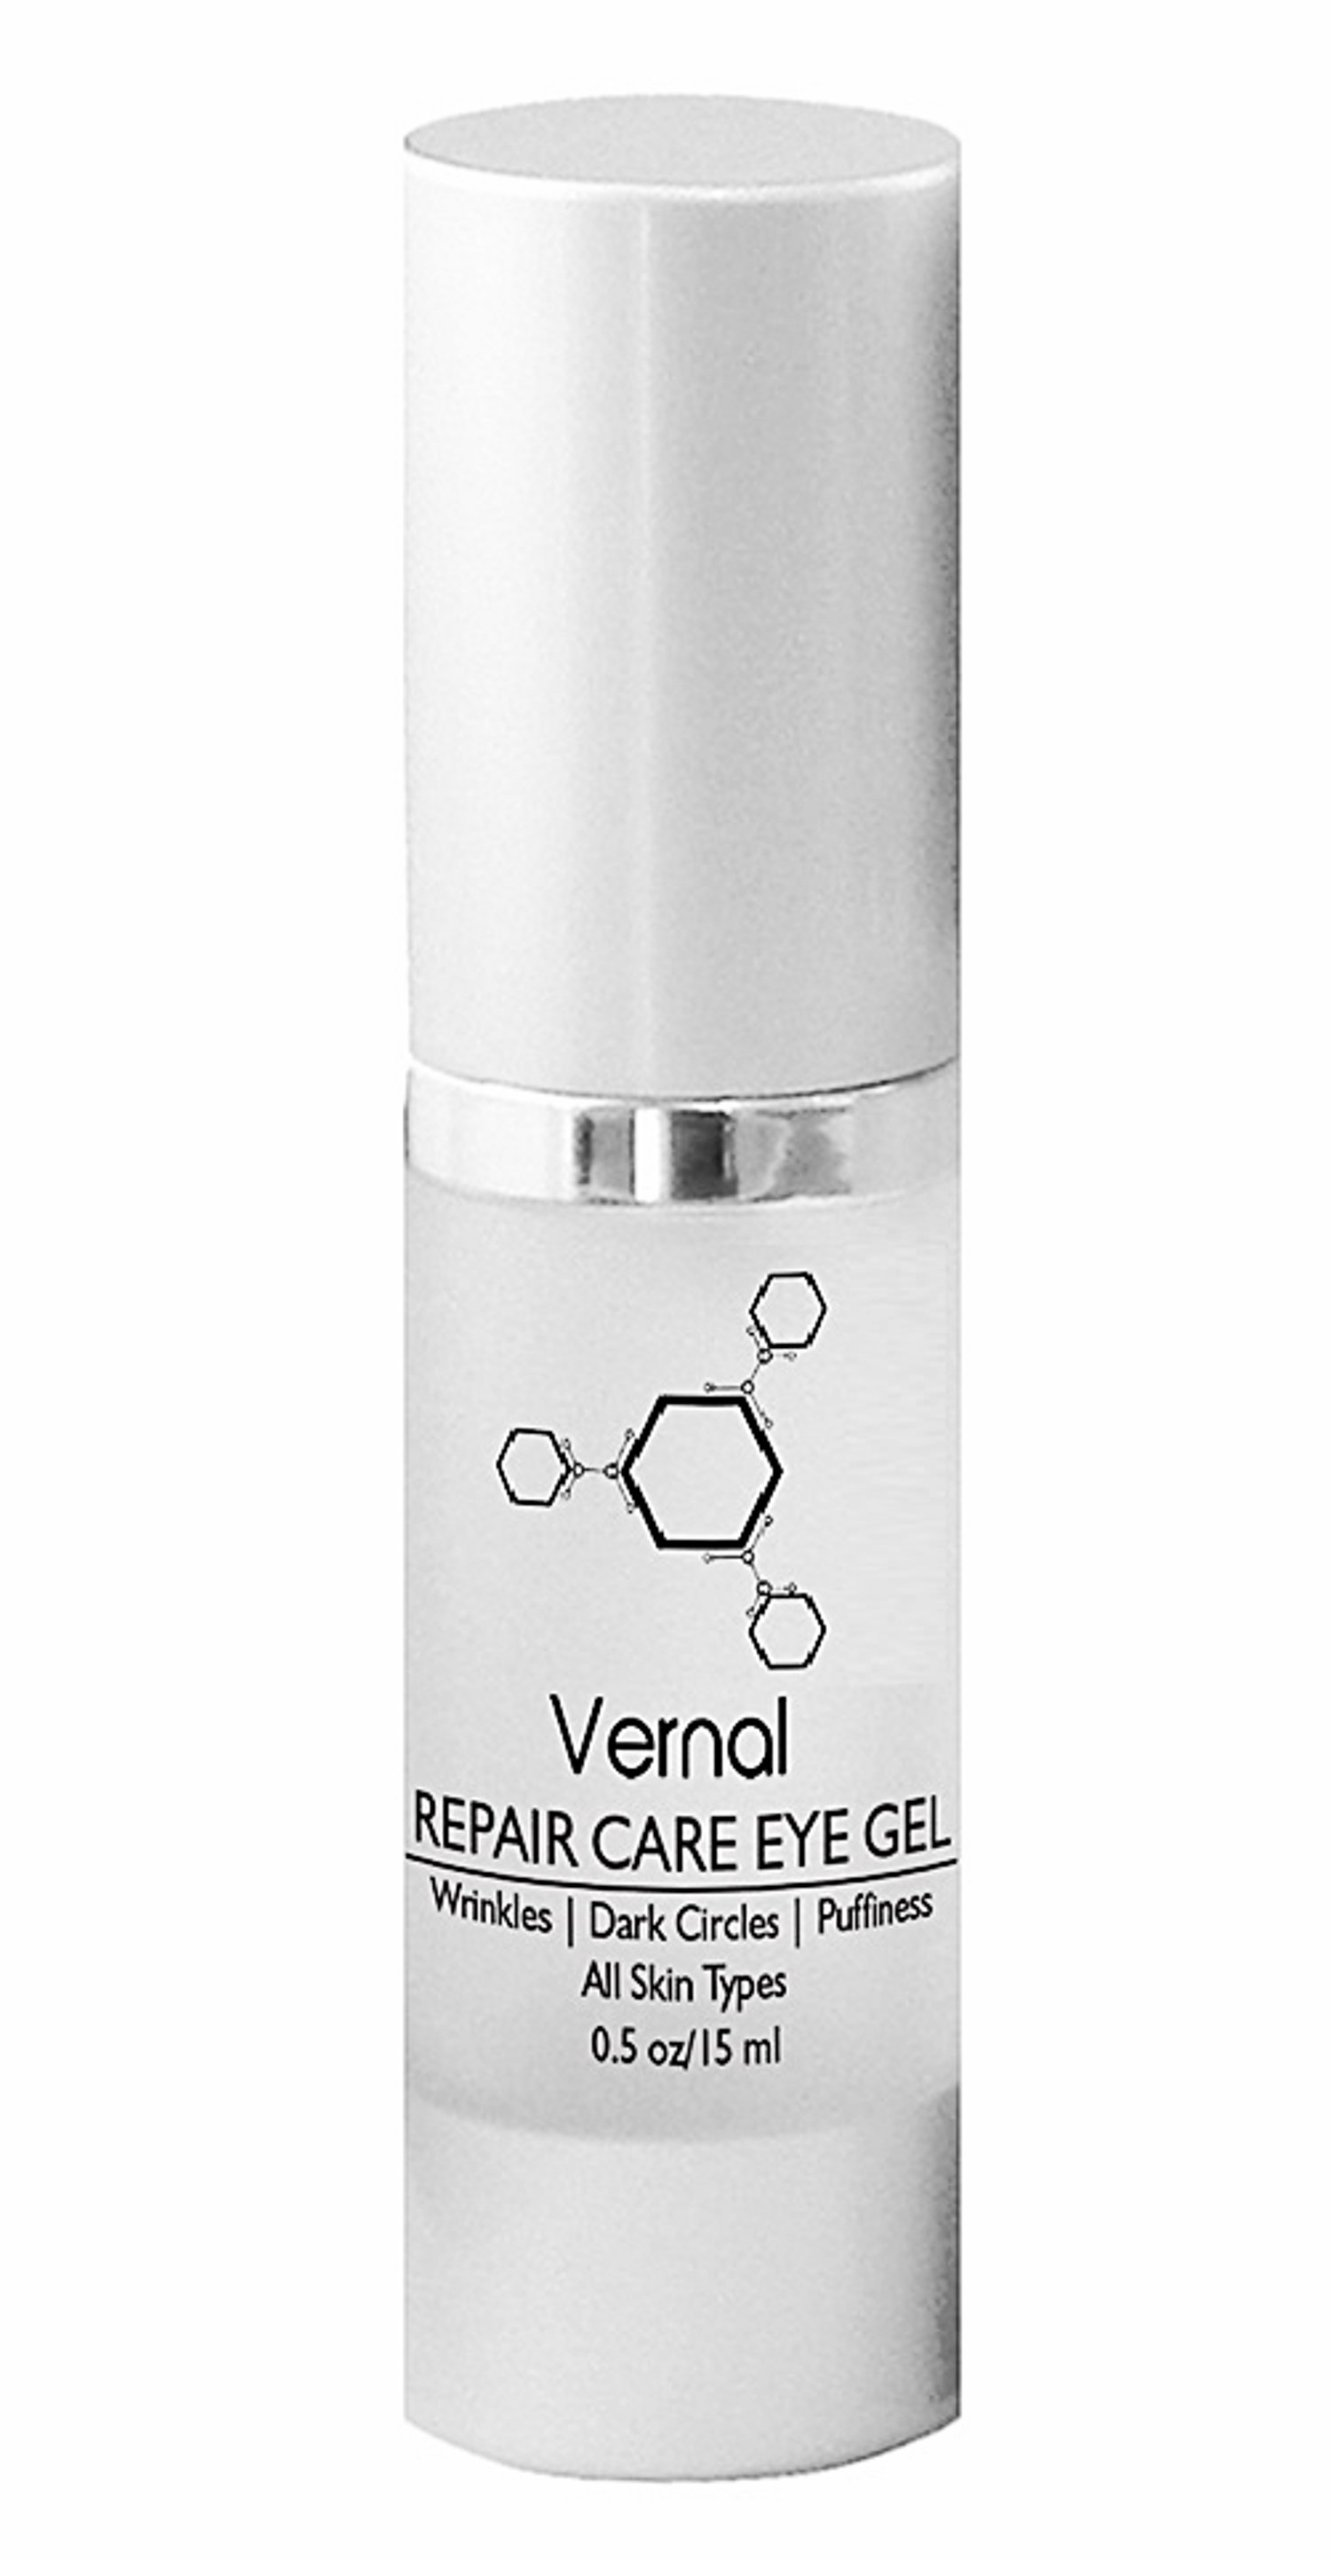 Vernal Repair Care Eye Gel – Best Anti Aging Eye Treatment – For Puffy Eyes, Dark Circles, Under Eye Bags & More – 0.5 fl oz